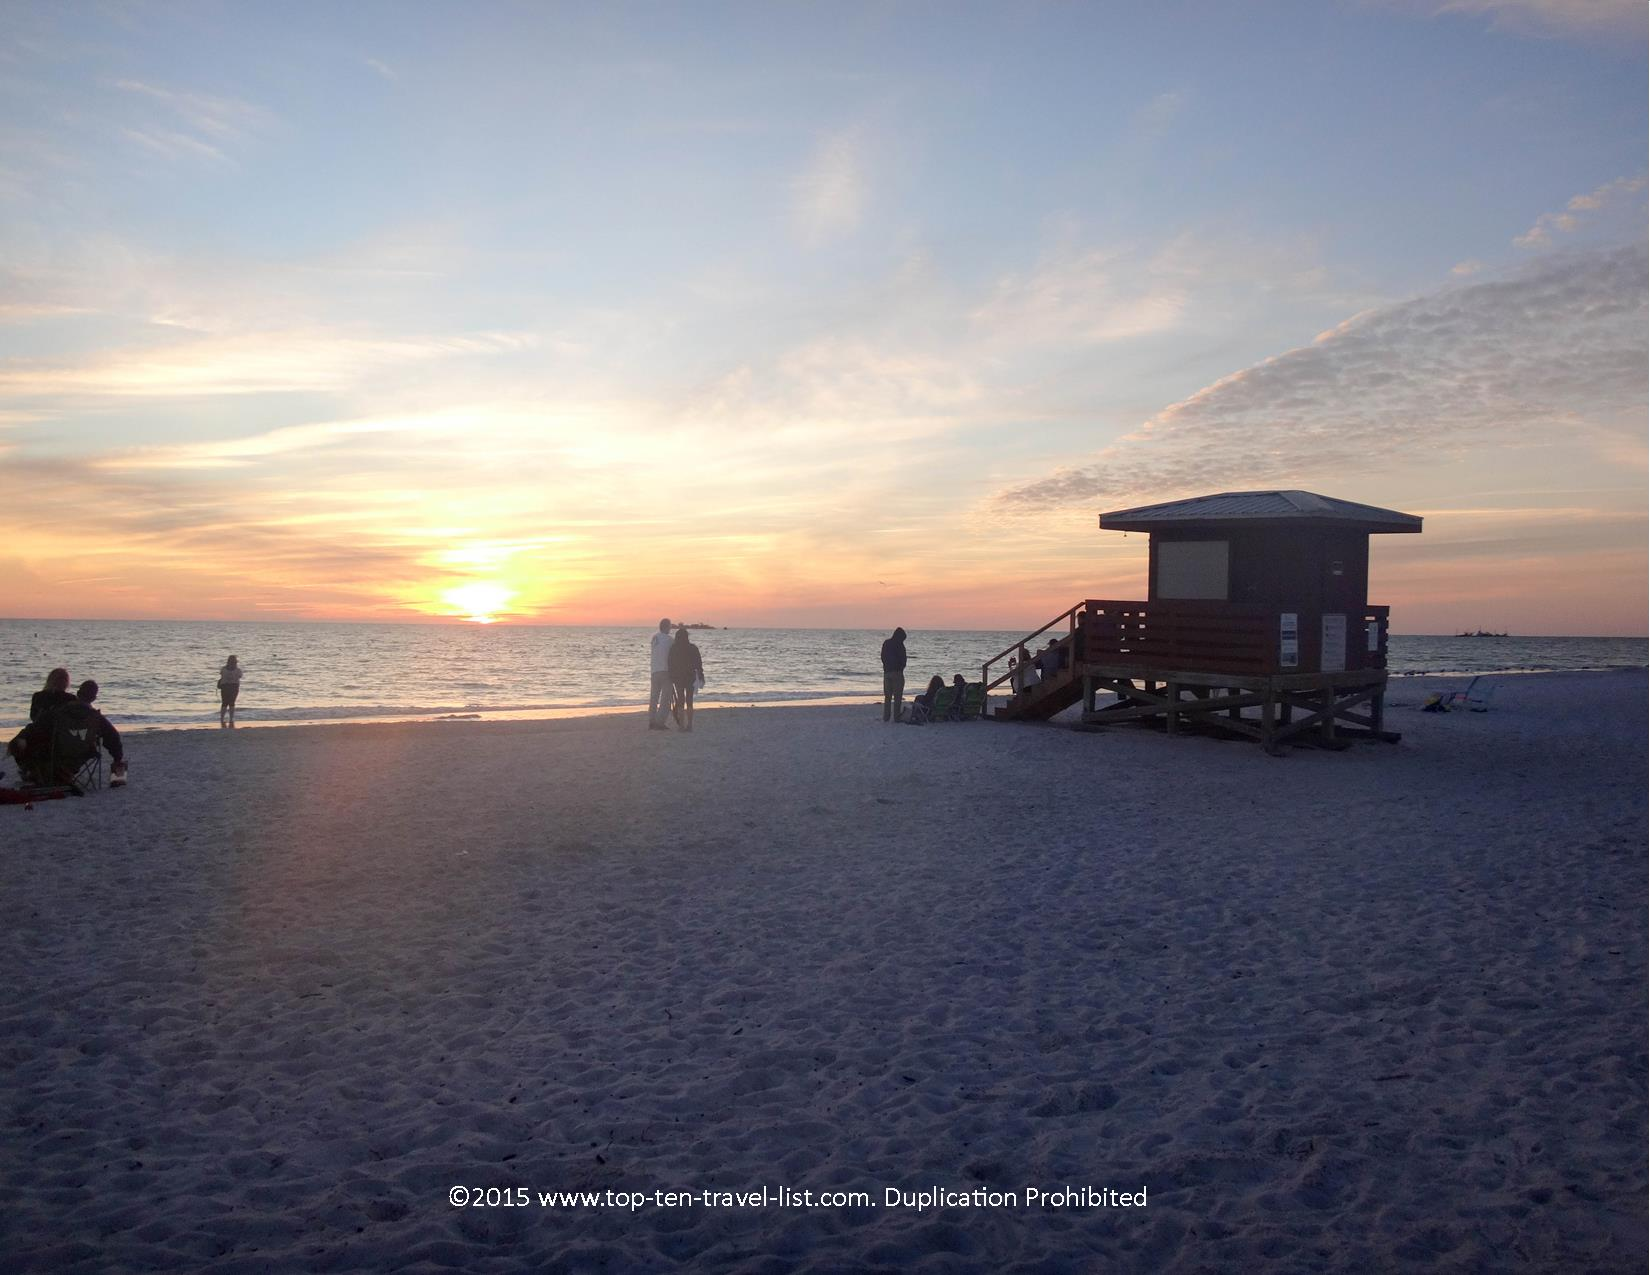 Sunset at beautiful Lido Beach in Florida